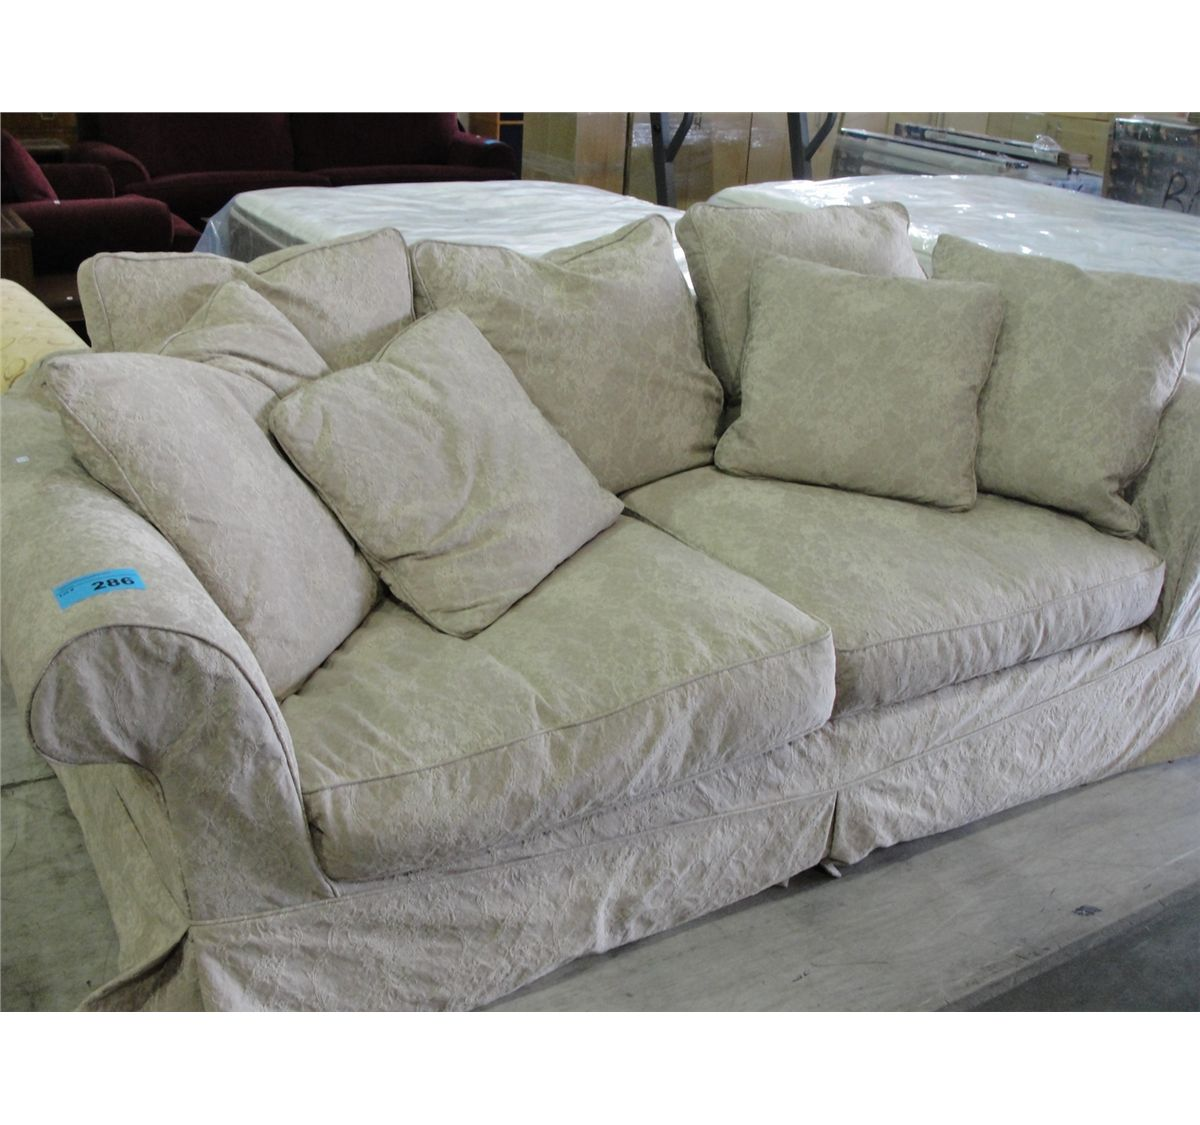 Overstuffed Sofas Sofa Beds Design Marvellous Ancient